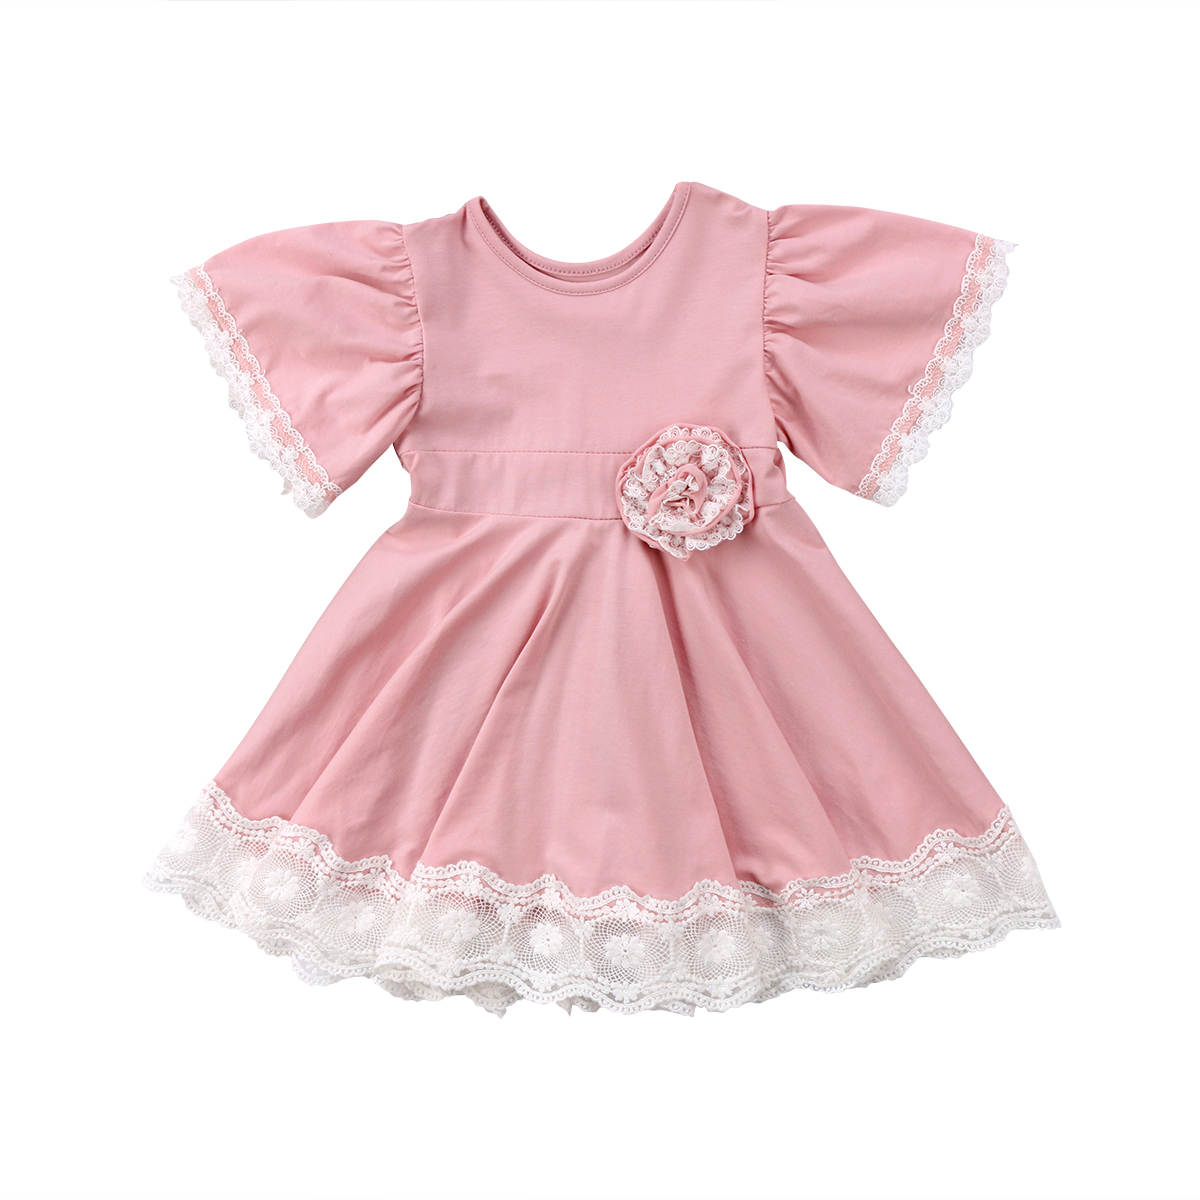 Kids Baby Girls Dress Lace Floral Party Dresses Summer Short Sleeve Round Neck Bridesmaid Girl Pink Easter Princess summer kids baby girls clothintg dress princess pageant wedding party lace short sleeve v neck dresses headband girl